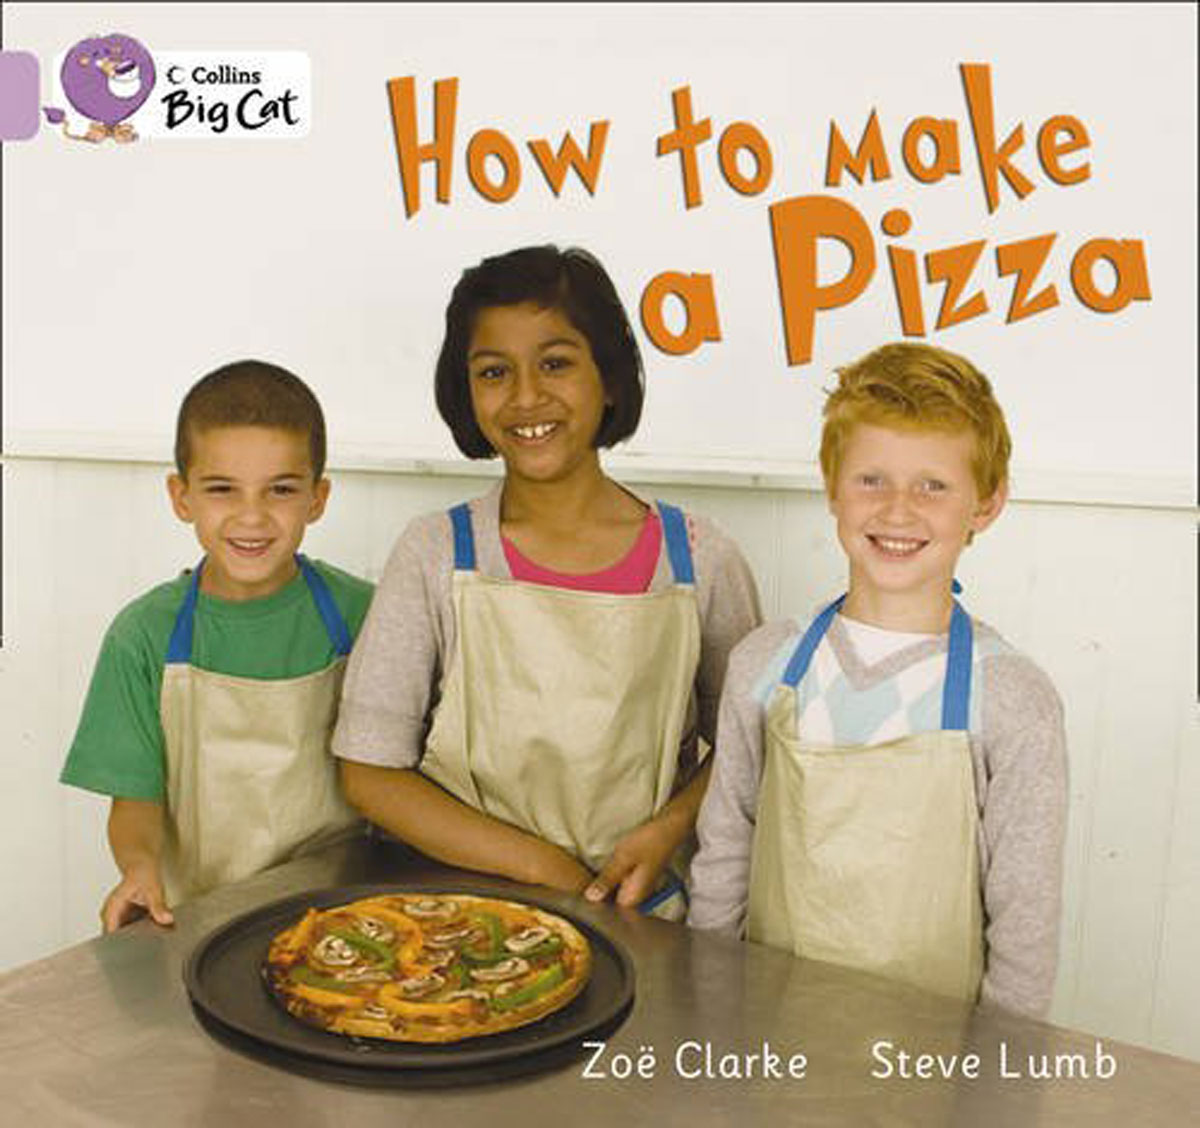 How to Make a Pizza